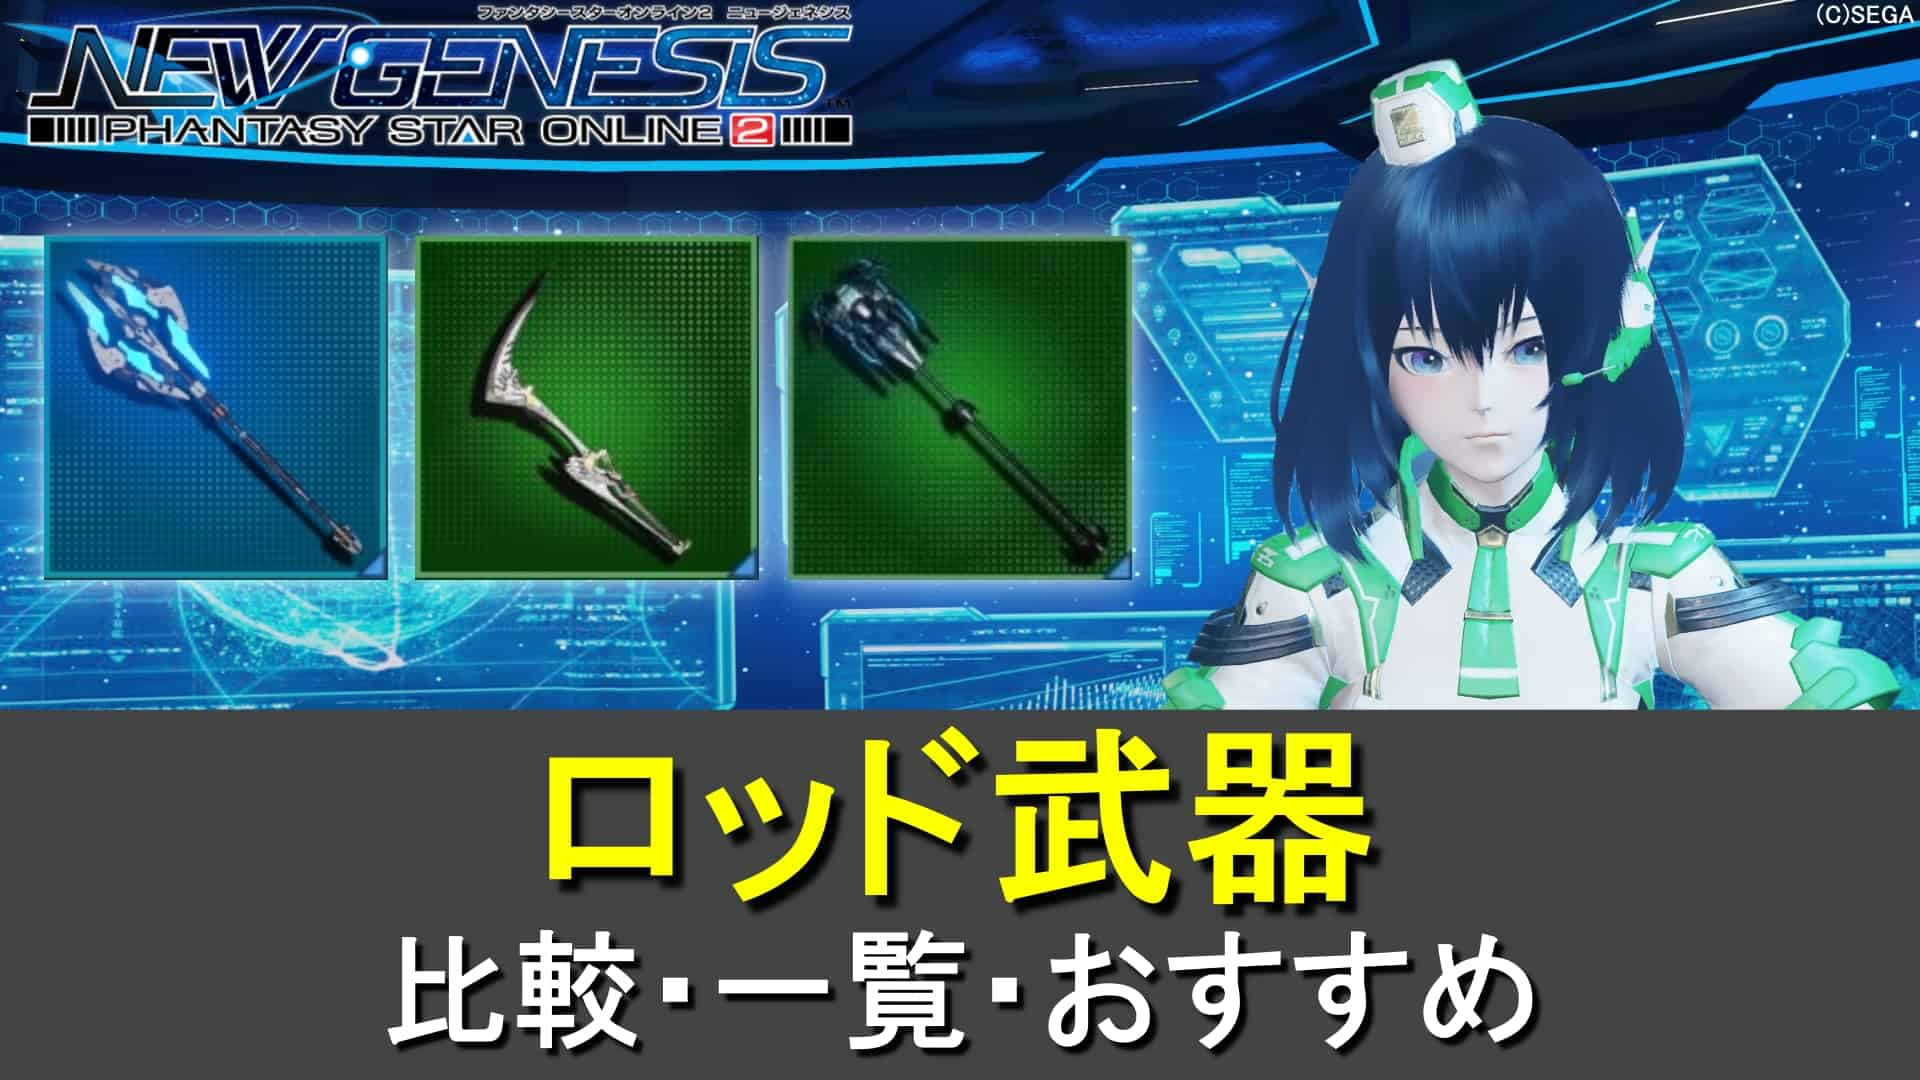 【PSO2NGS】ロッド武器の一覧、潜在まとめ